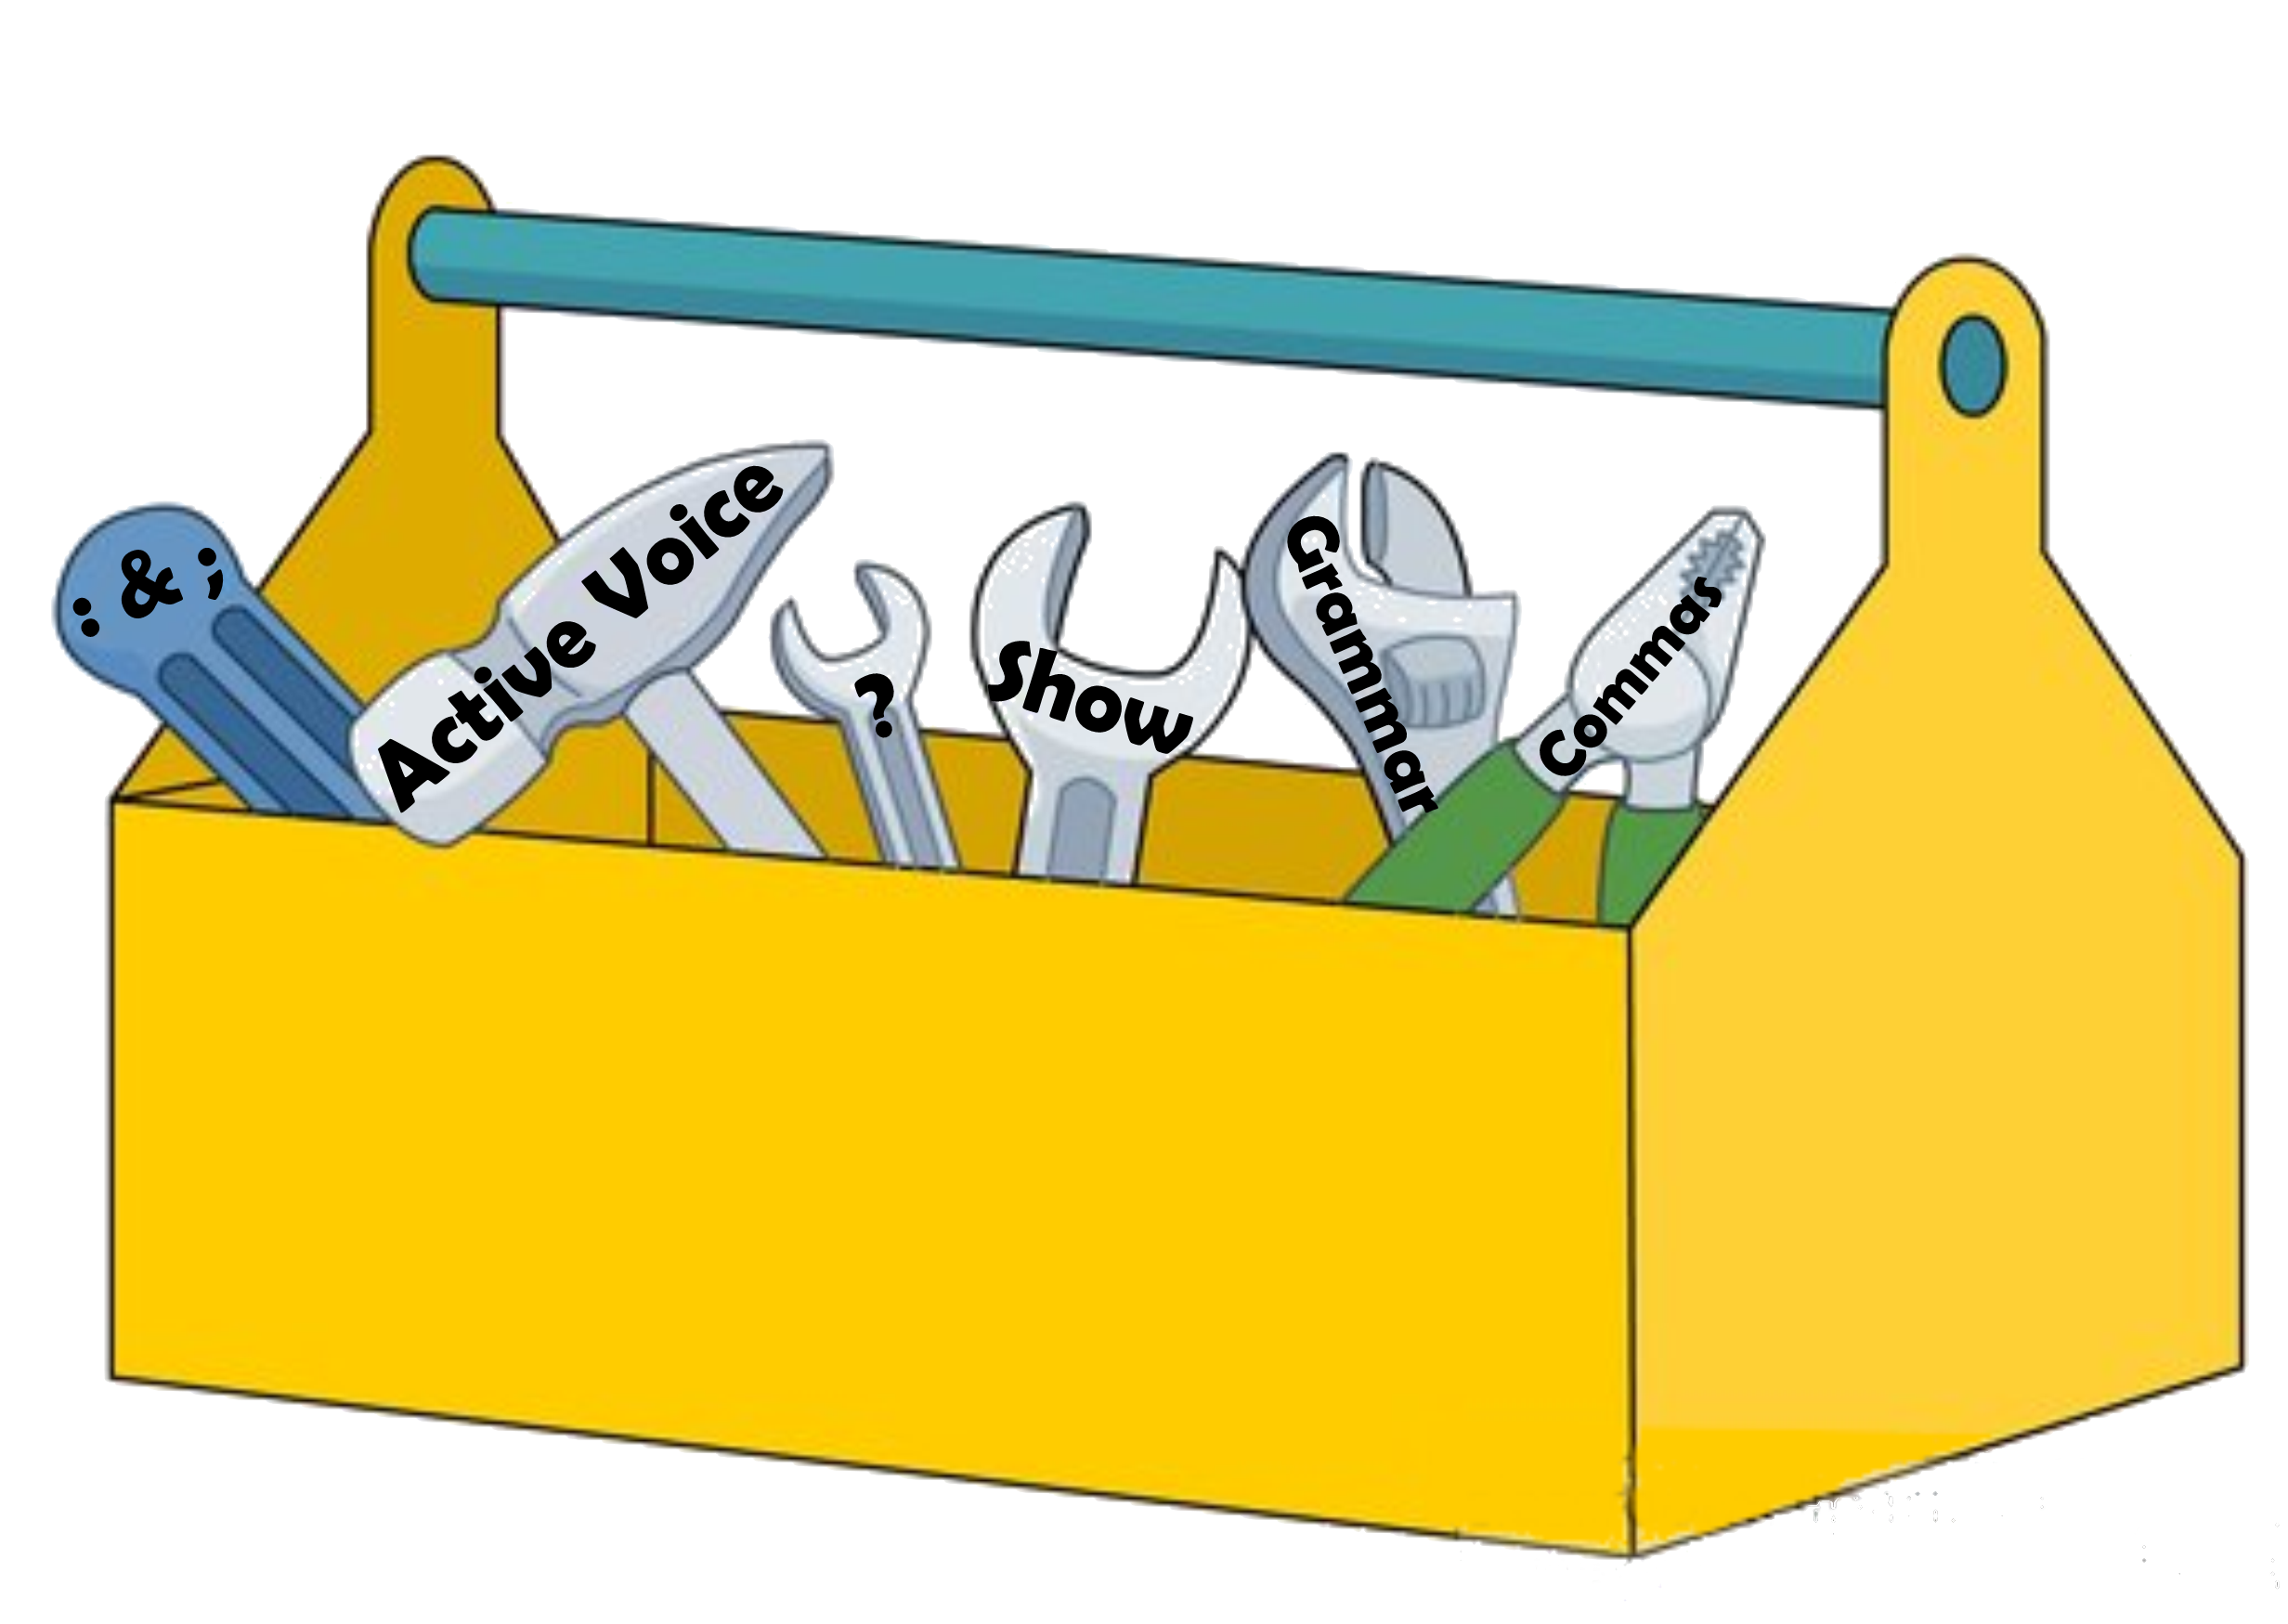 Upcoming the writer s. Clipart writing writers workshop